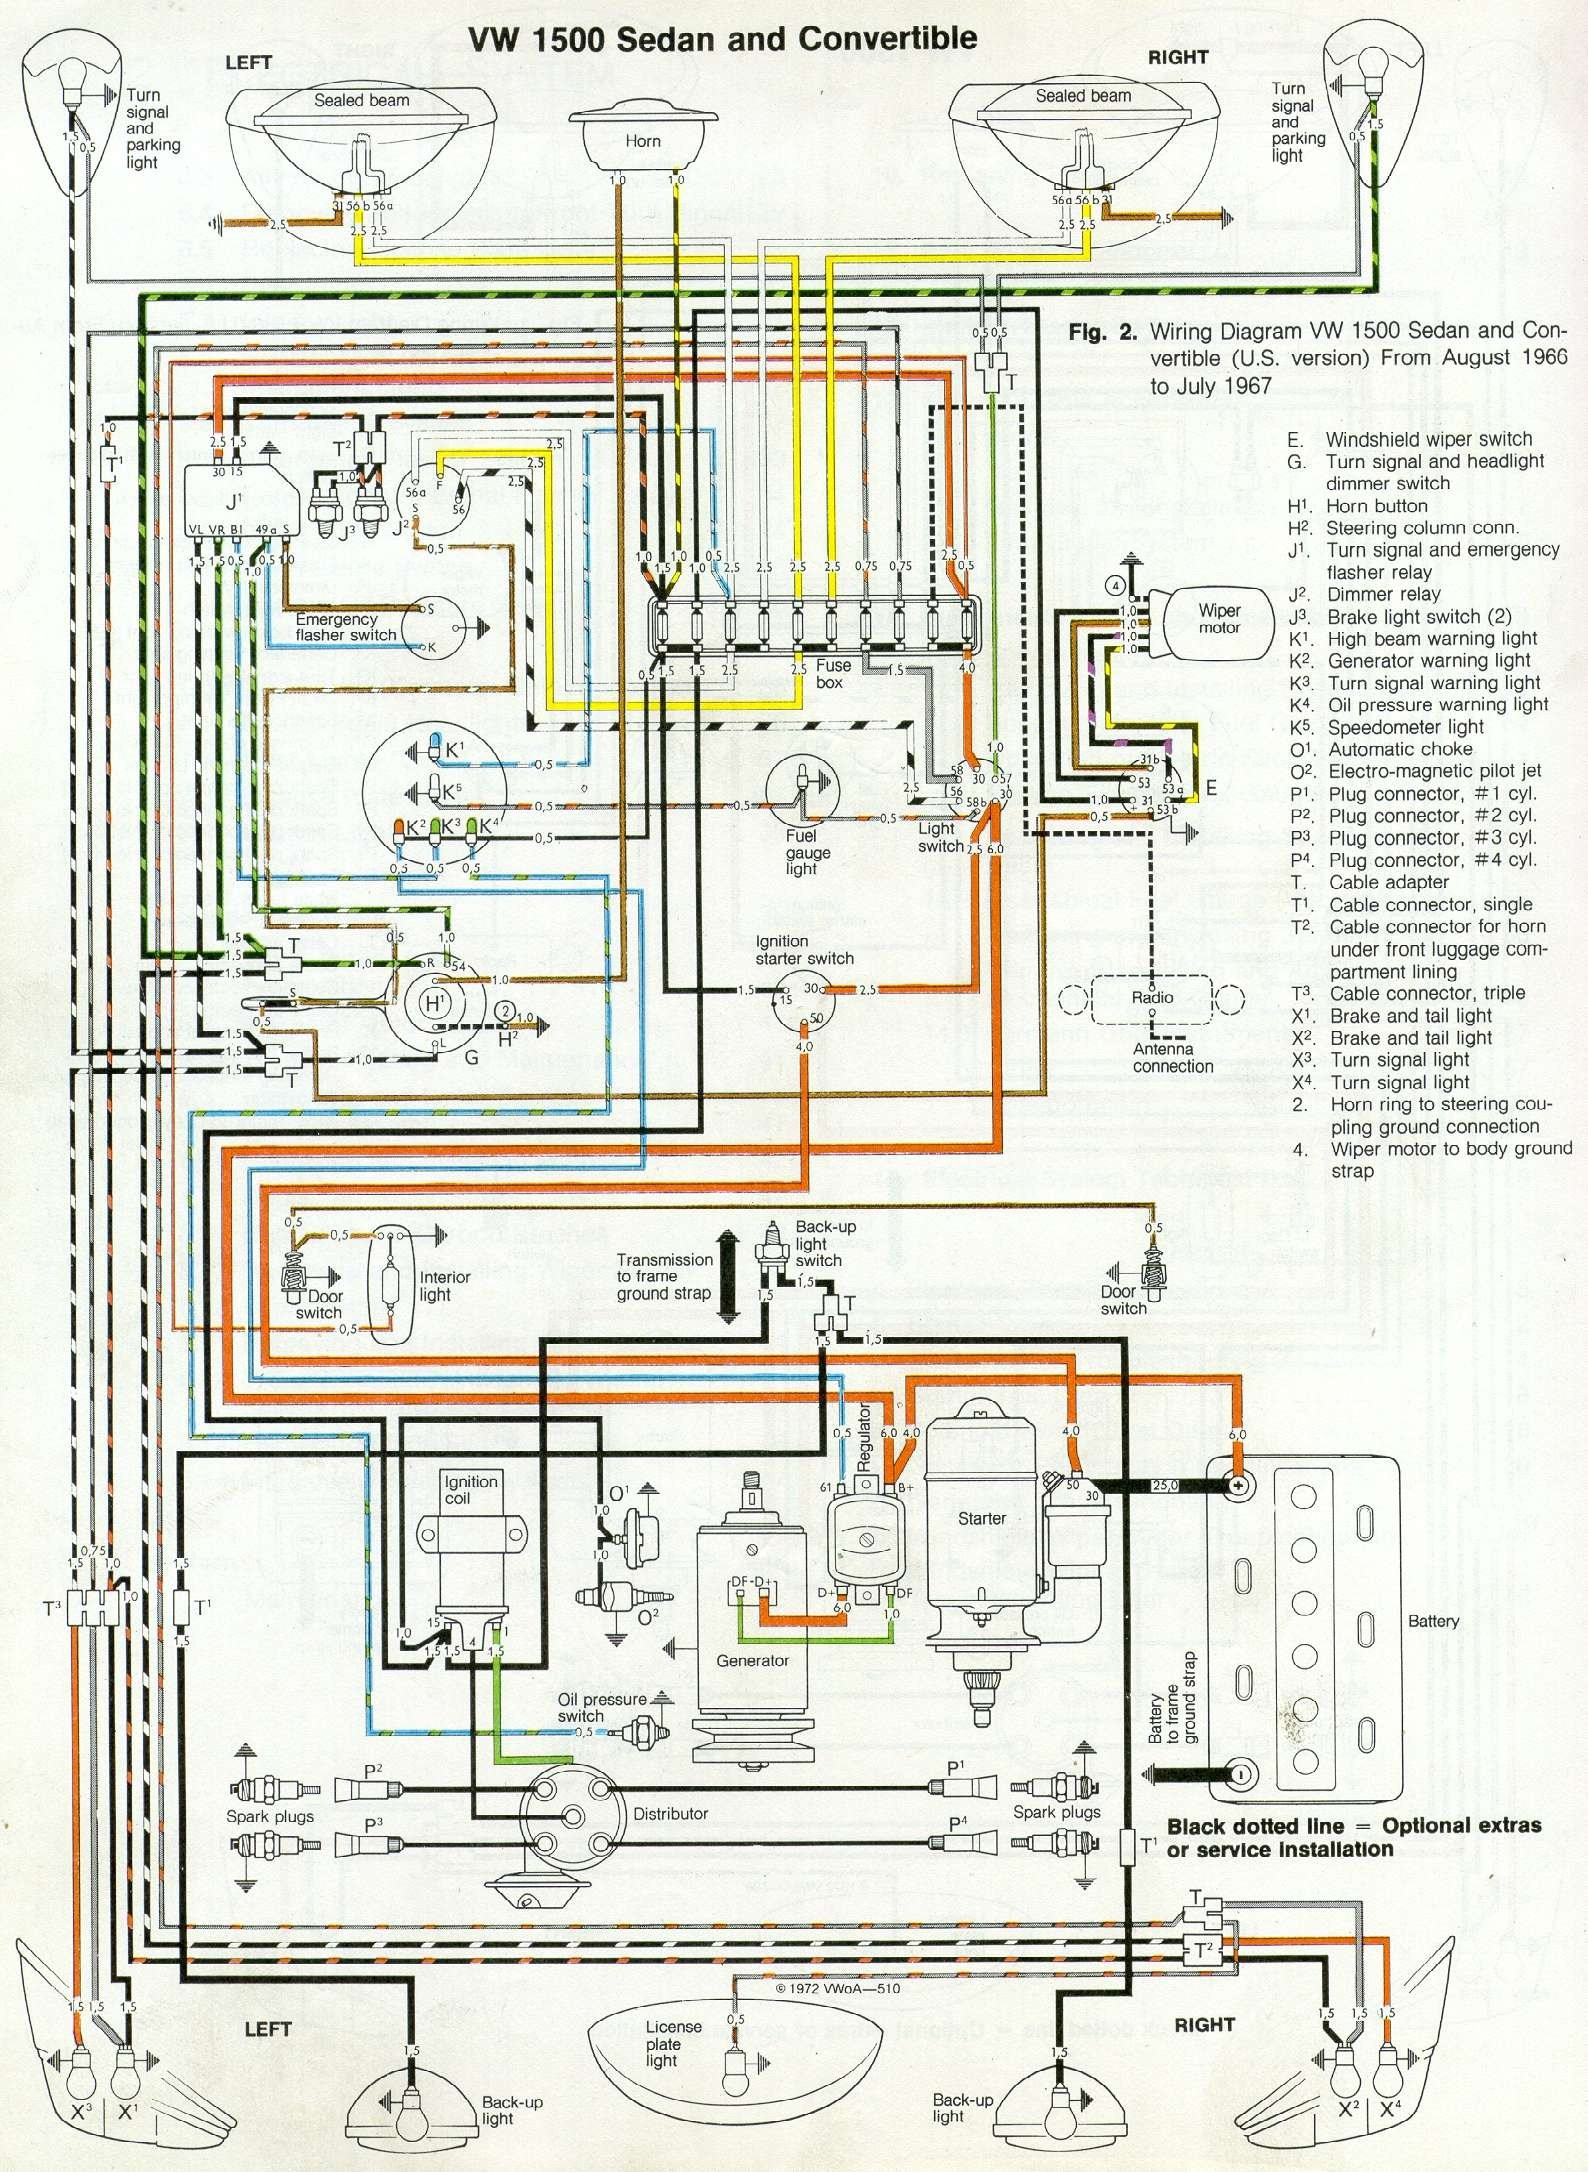 VW Beetle Wiring Digram 67 beetle wiring diagram u s version 1967 vw beetle vw beetle wiring diagram at couponss.co